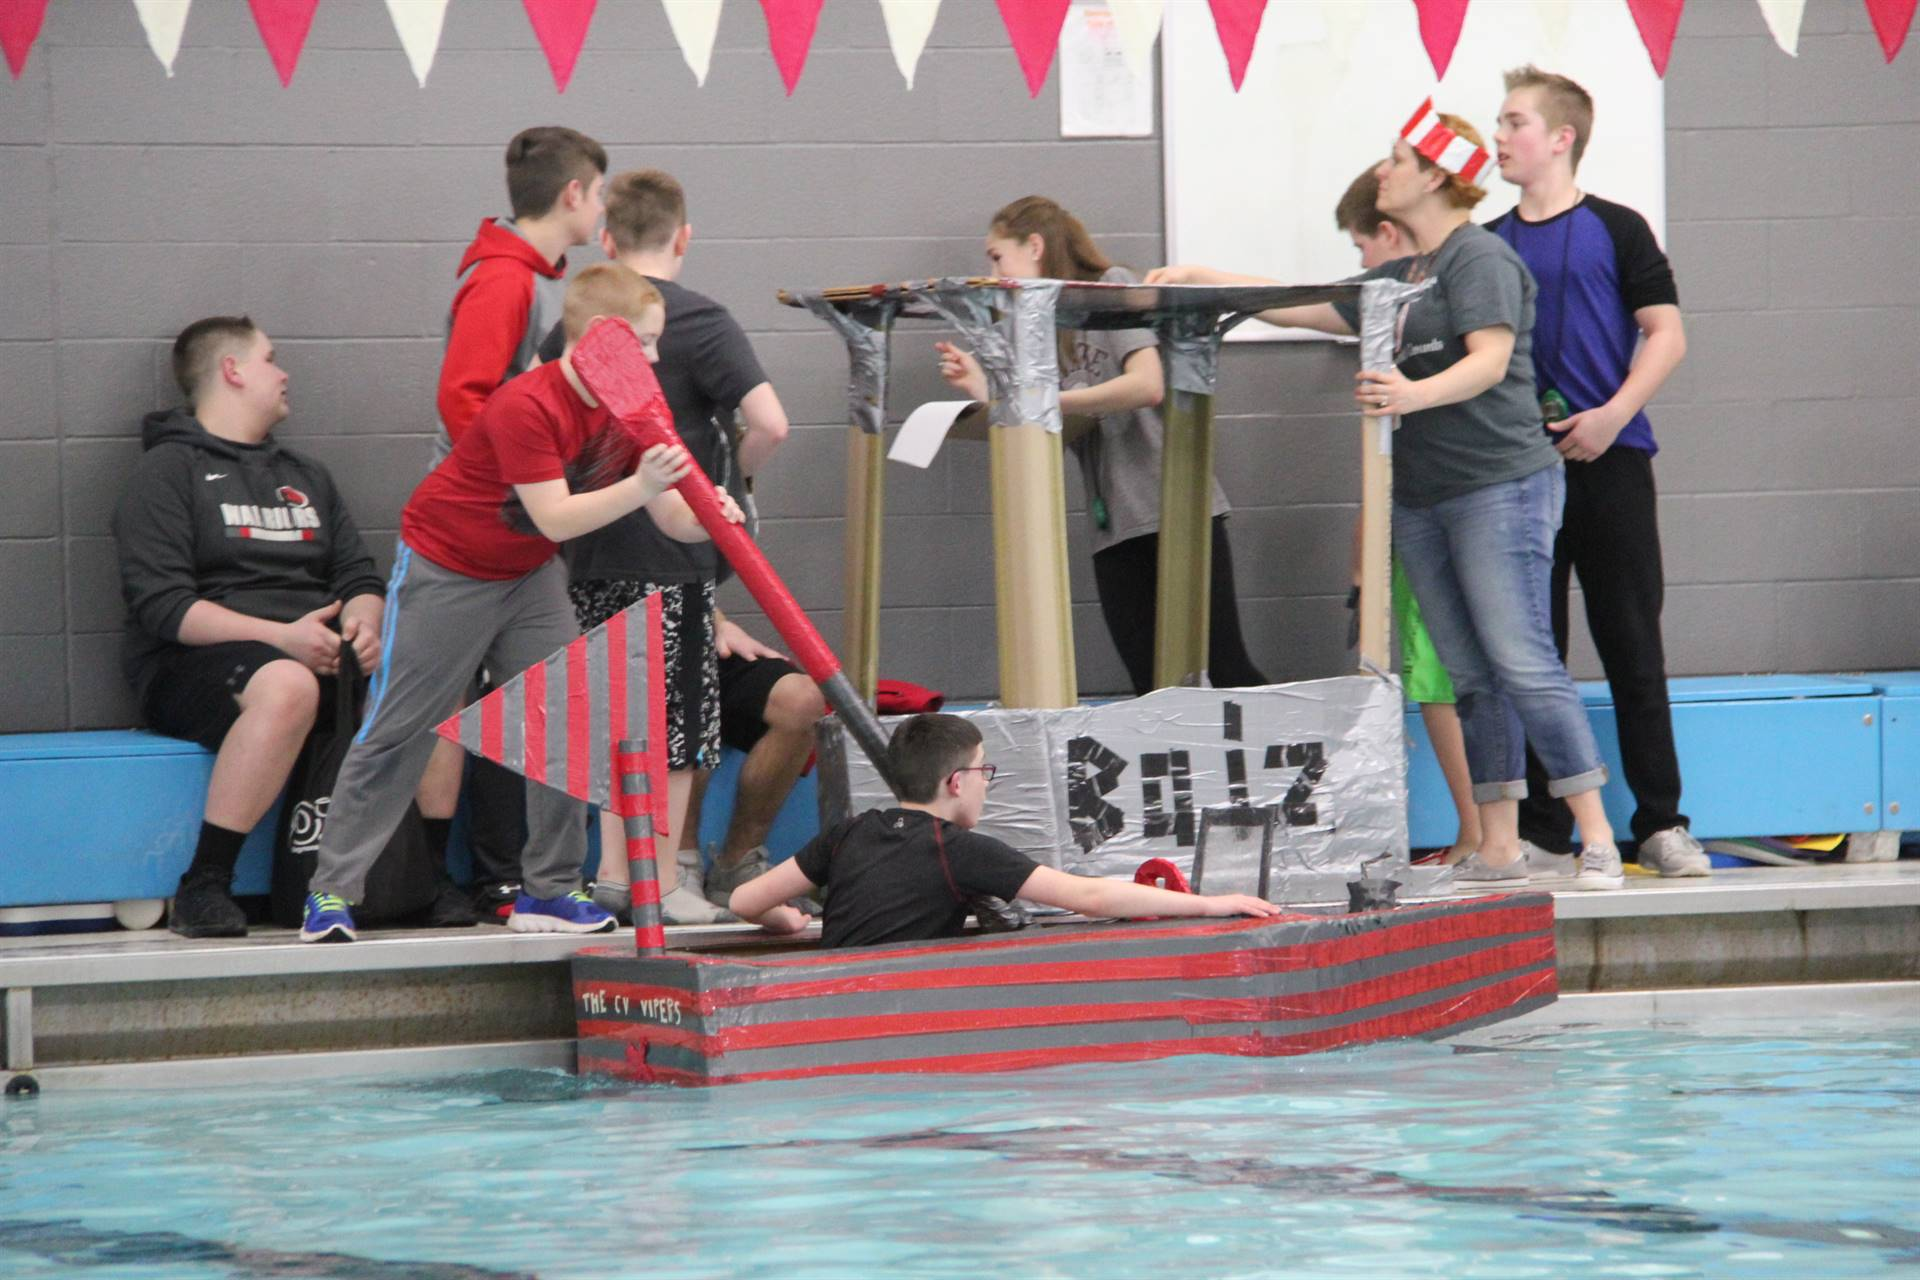 Middle School Cardboard Boat Races 25